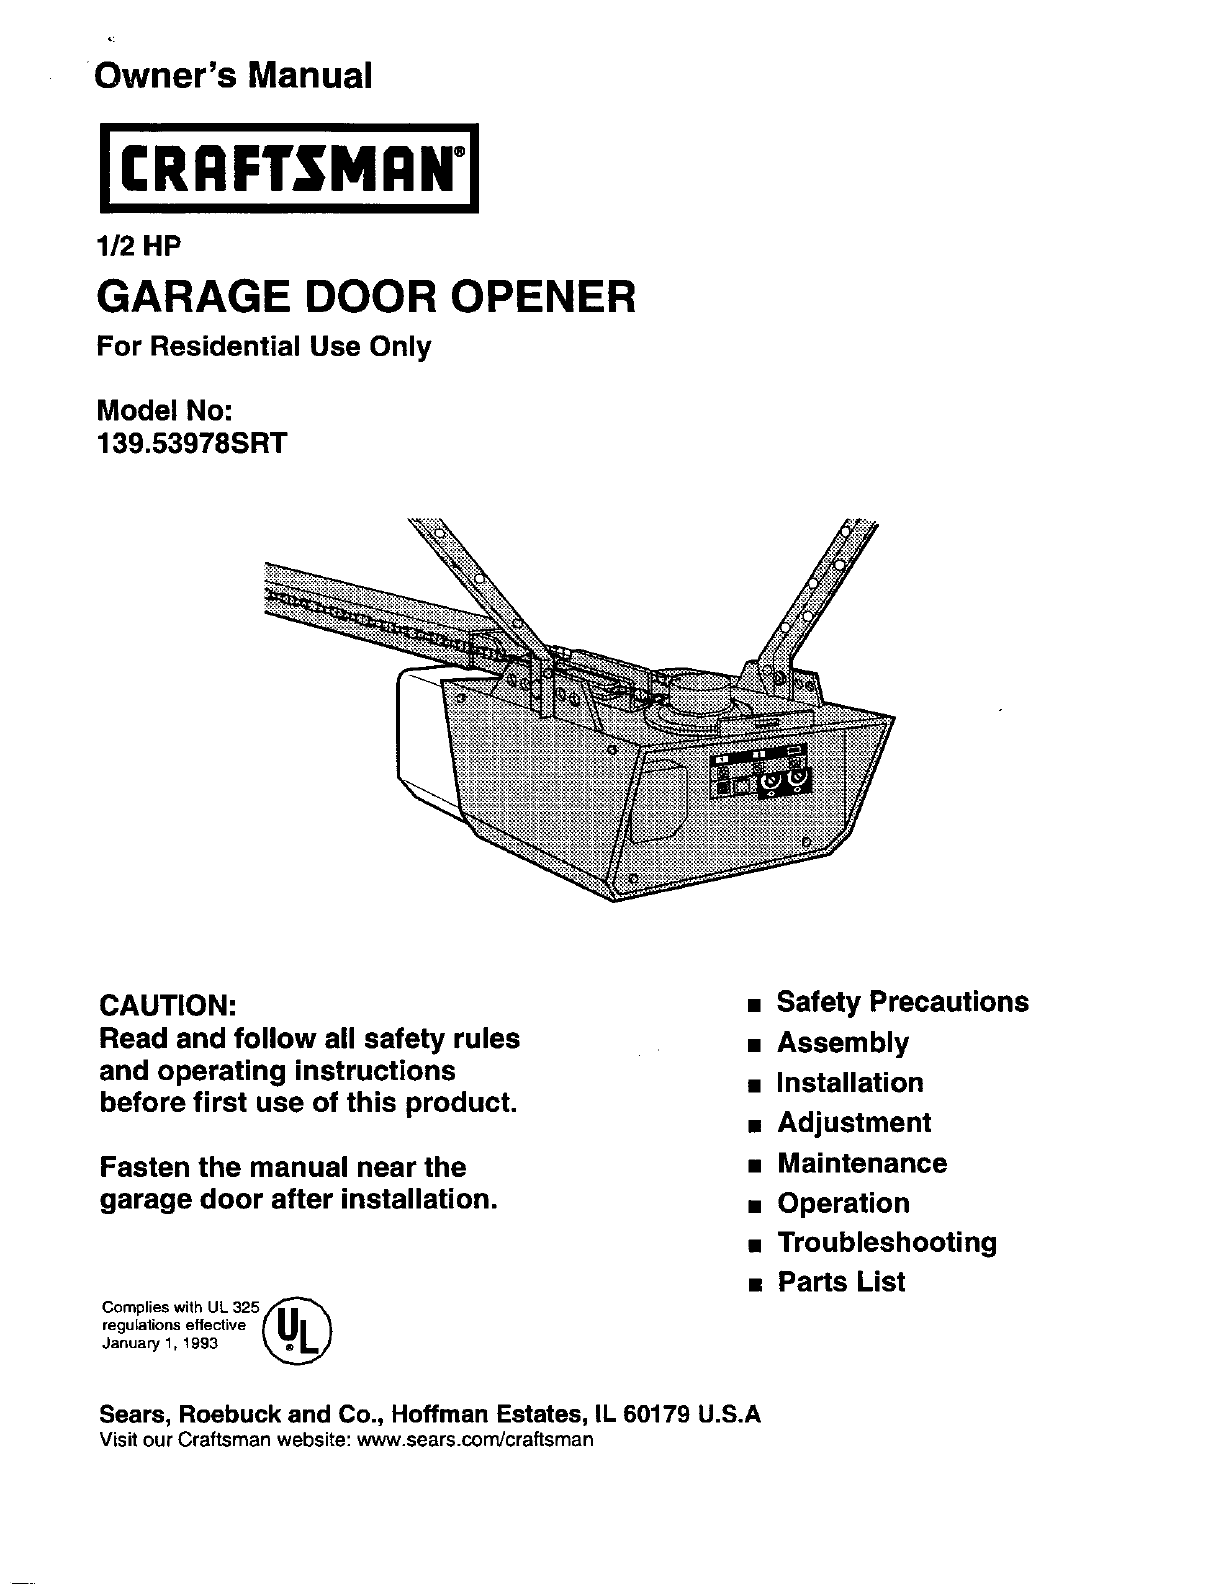 0f05b938 d0cb 4872 aeee 96ef63eab4f3 bg1 craftsman garage door opener 139 53978srt user guide craftsman garage door wiring diagram at suagrazia.org